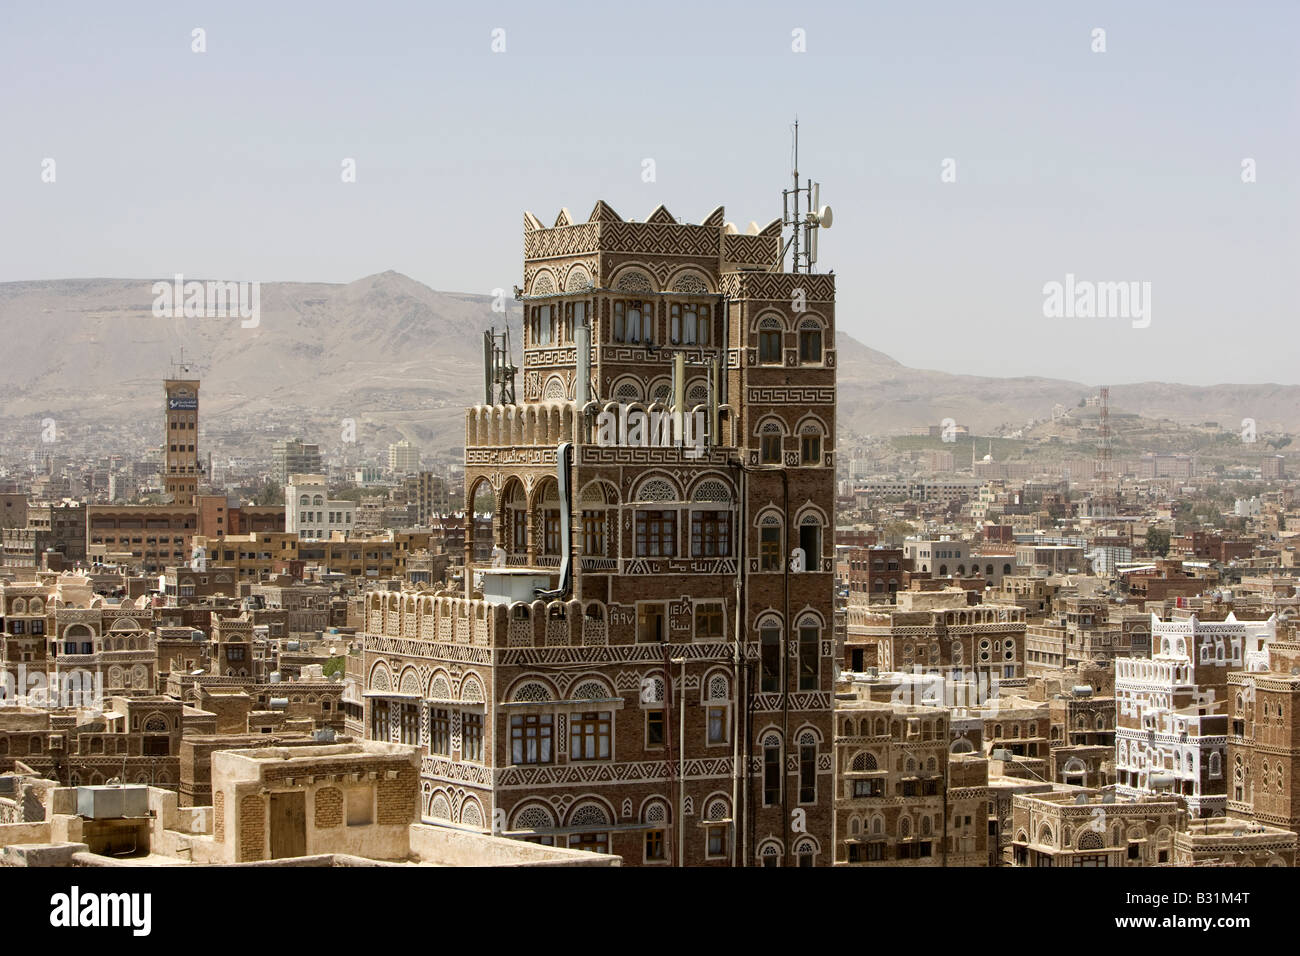 sanaa the ancient capital city of yemen stock photo: 19092104 - alamy